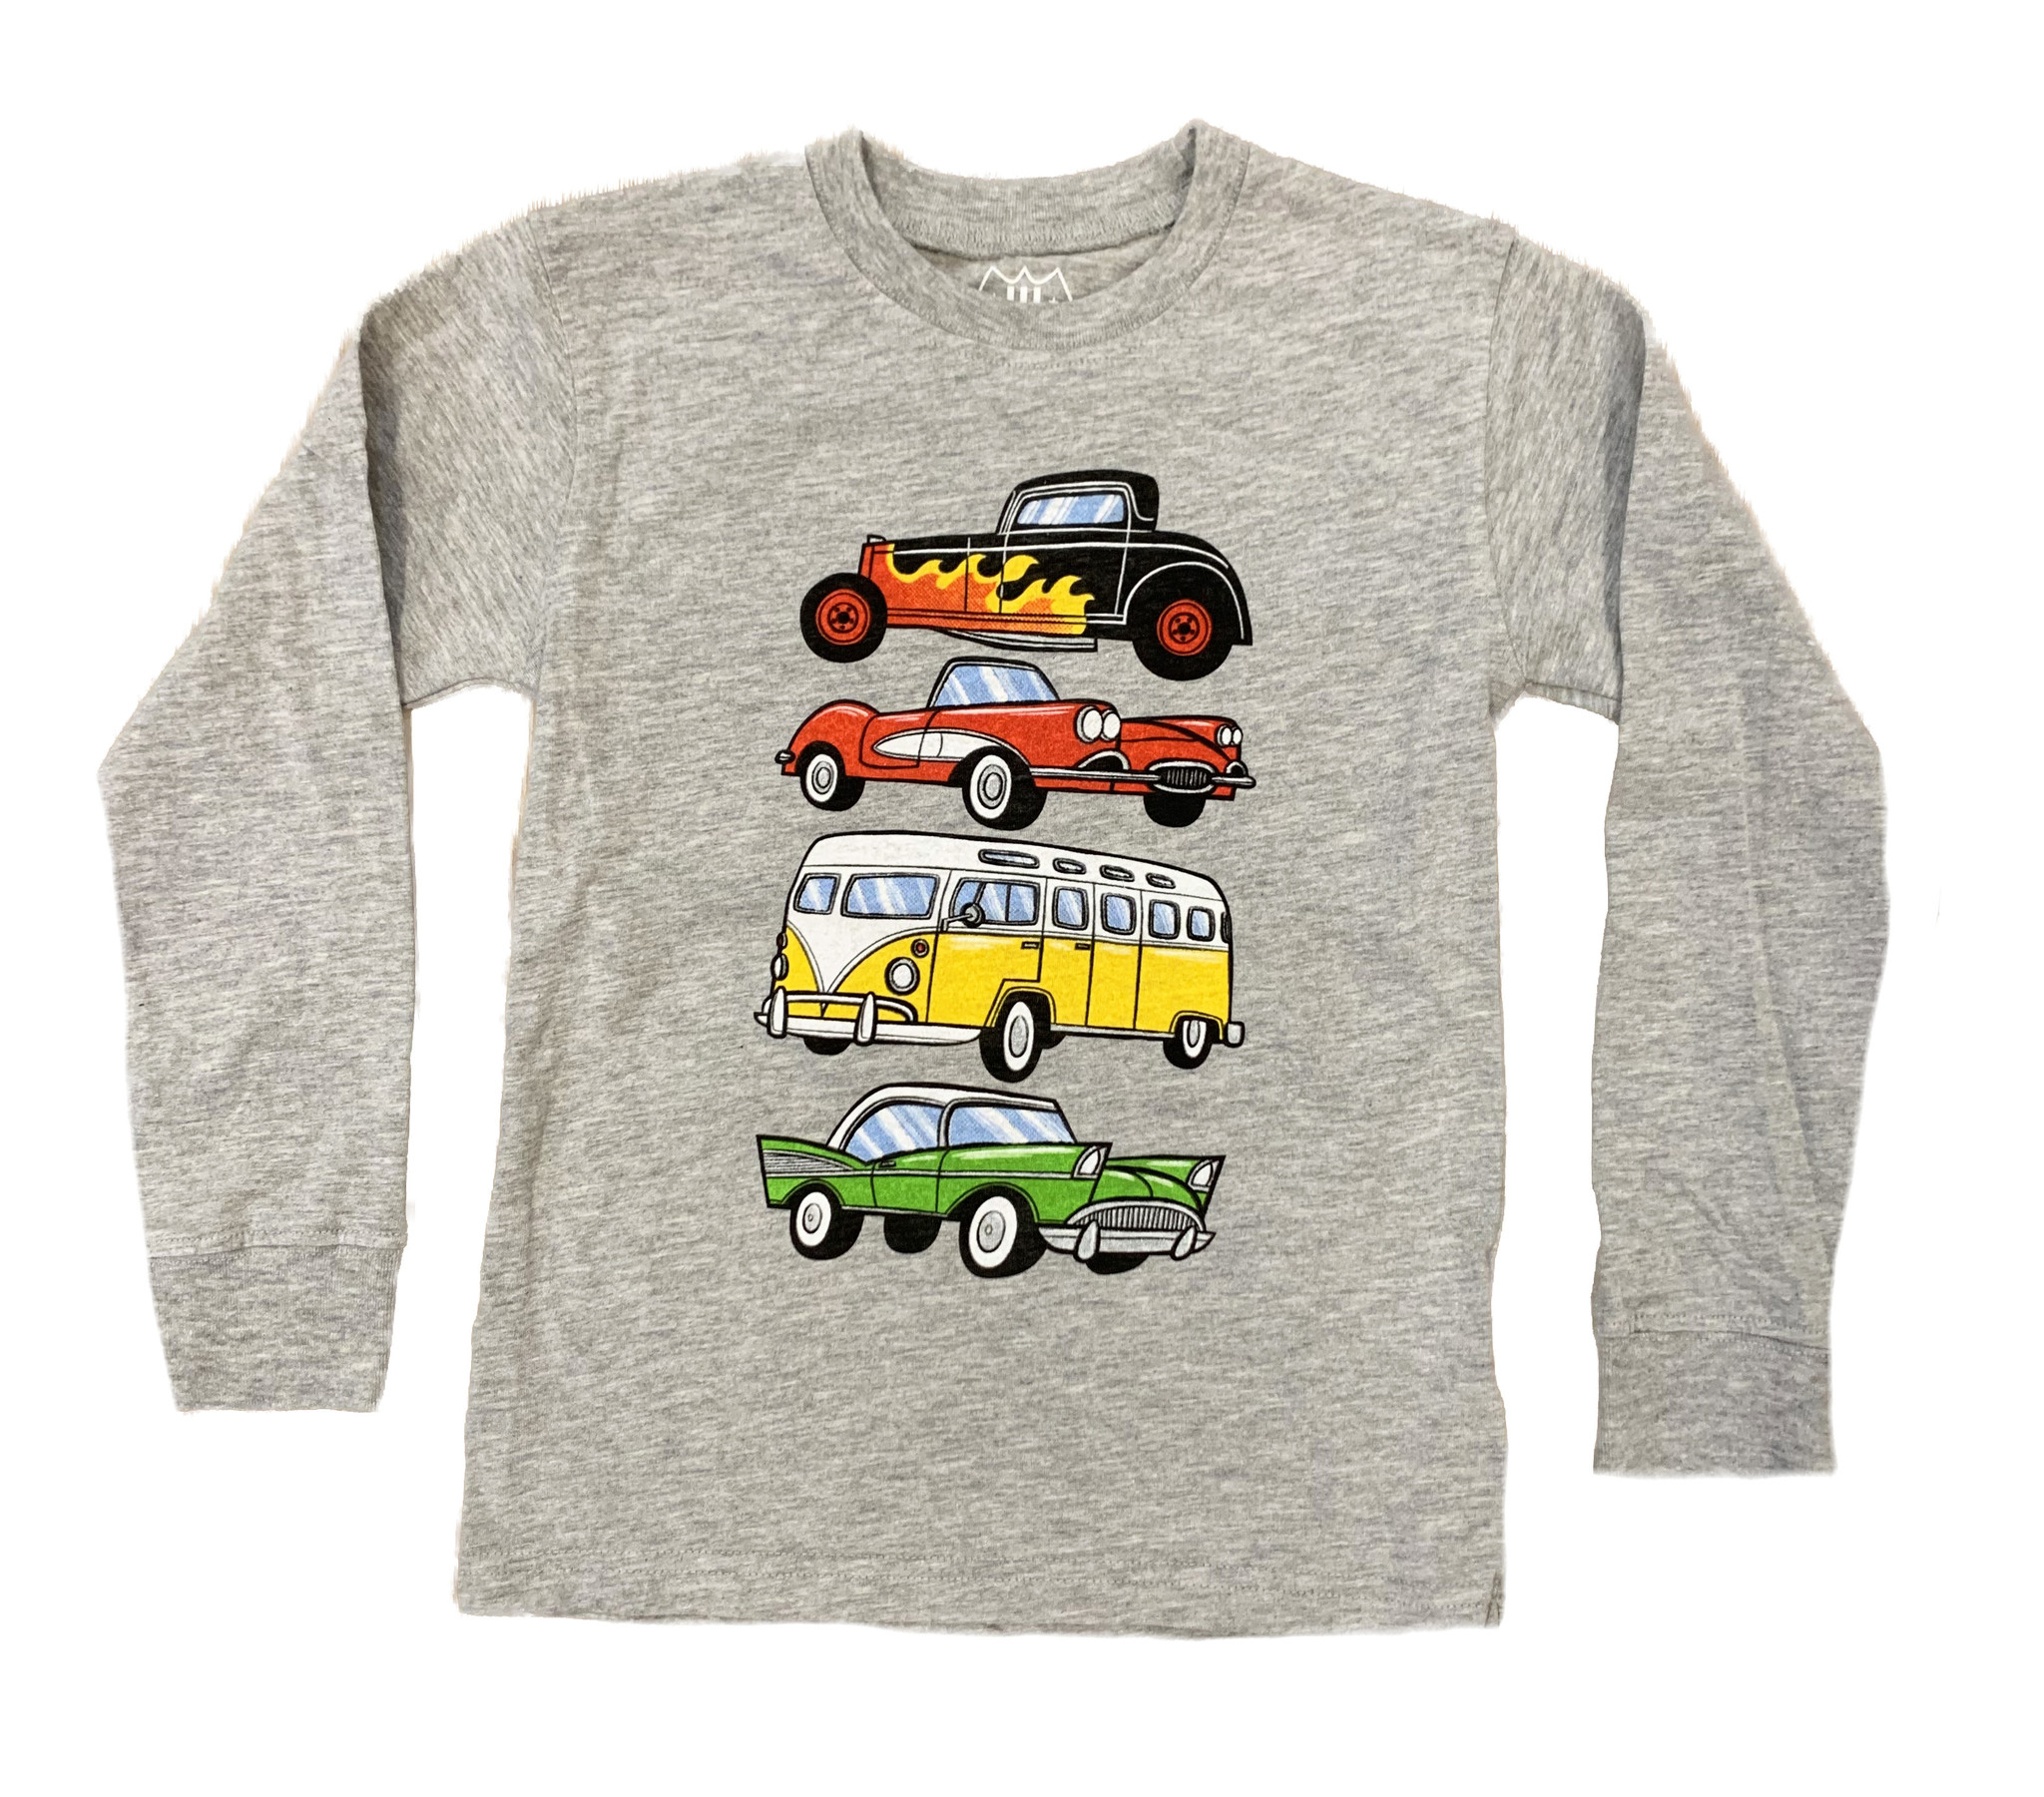 Wes and Willy Vintage Cars Infant Tee